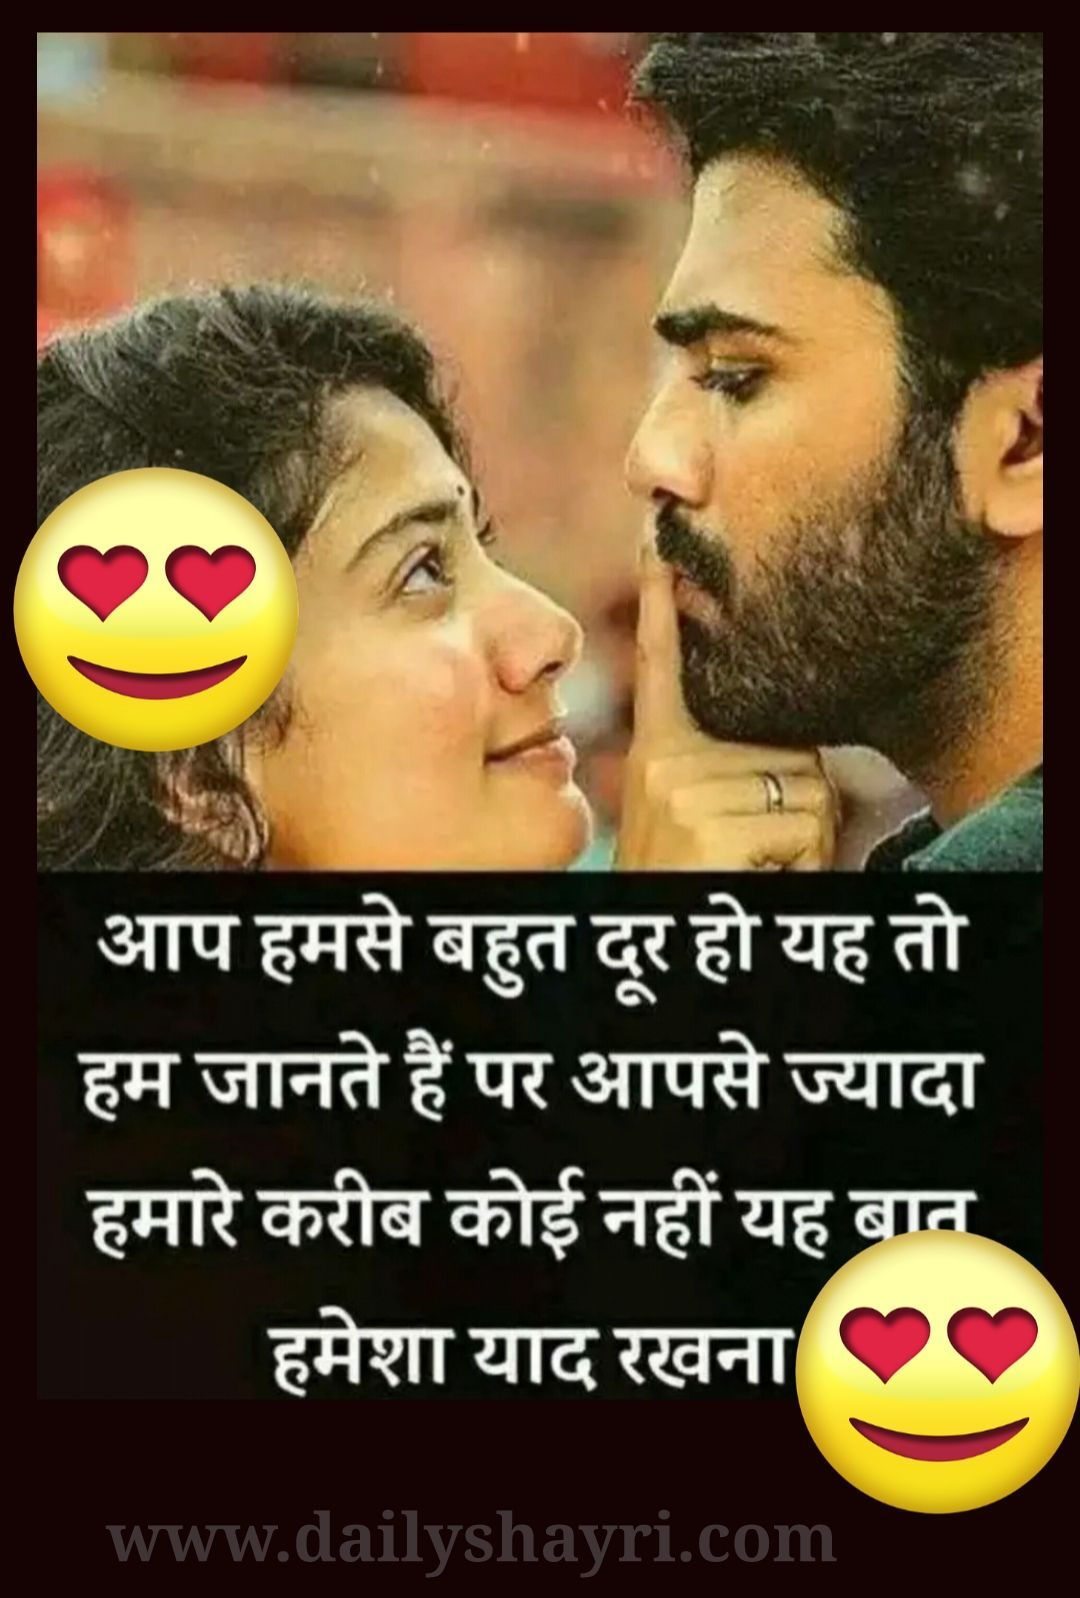 Love Shayari Images Download For Whatsapp Dp Love Quotes With Images Love Smile Quotes Love Picture Quotes